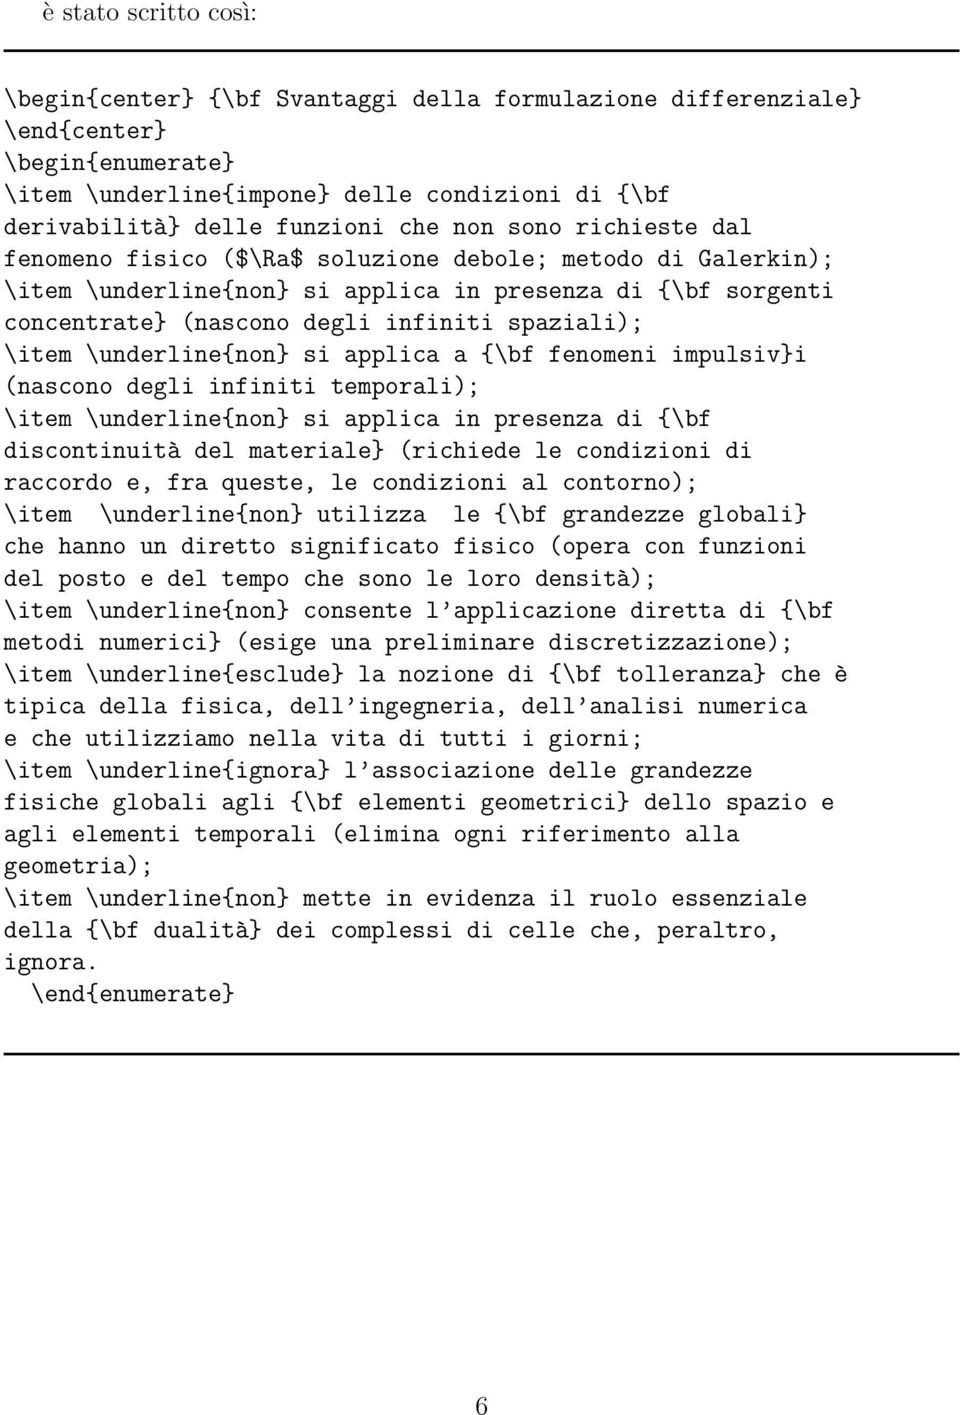 \item \underline{non} si applica a {\bf fenomeni impulsiv}i (nascono degli infiniti temporali); \item \underline{non} si applica in presenza di {\bf discontinuità del materiale} (richiede le